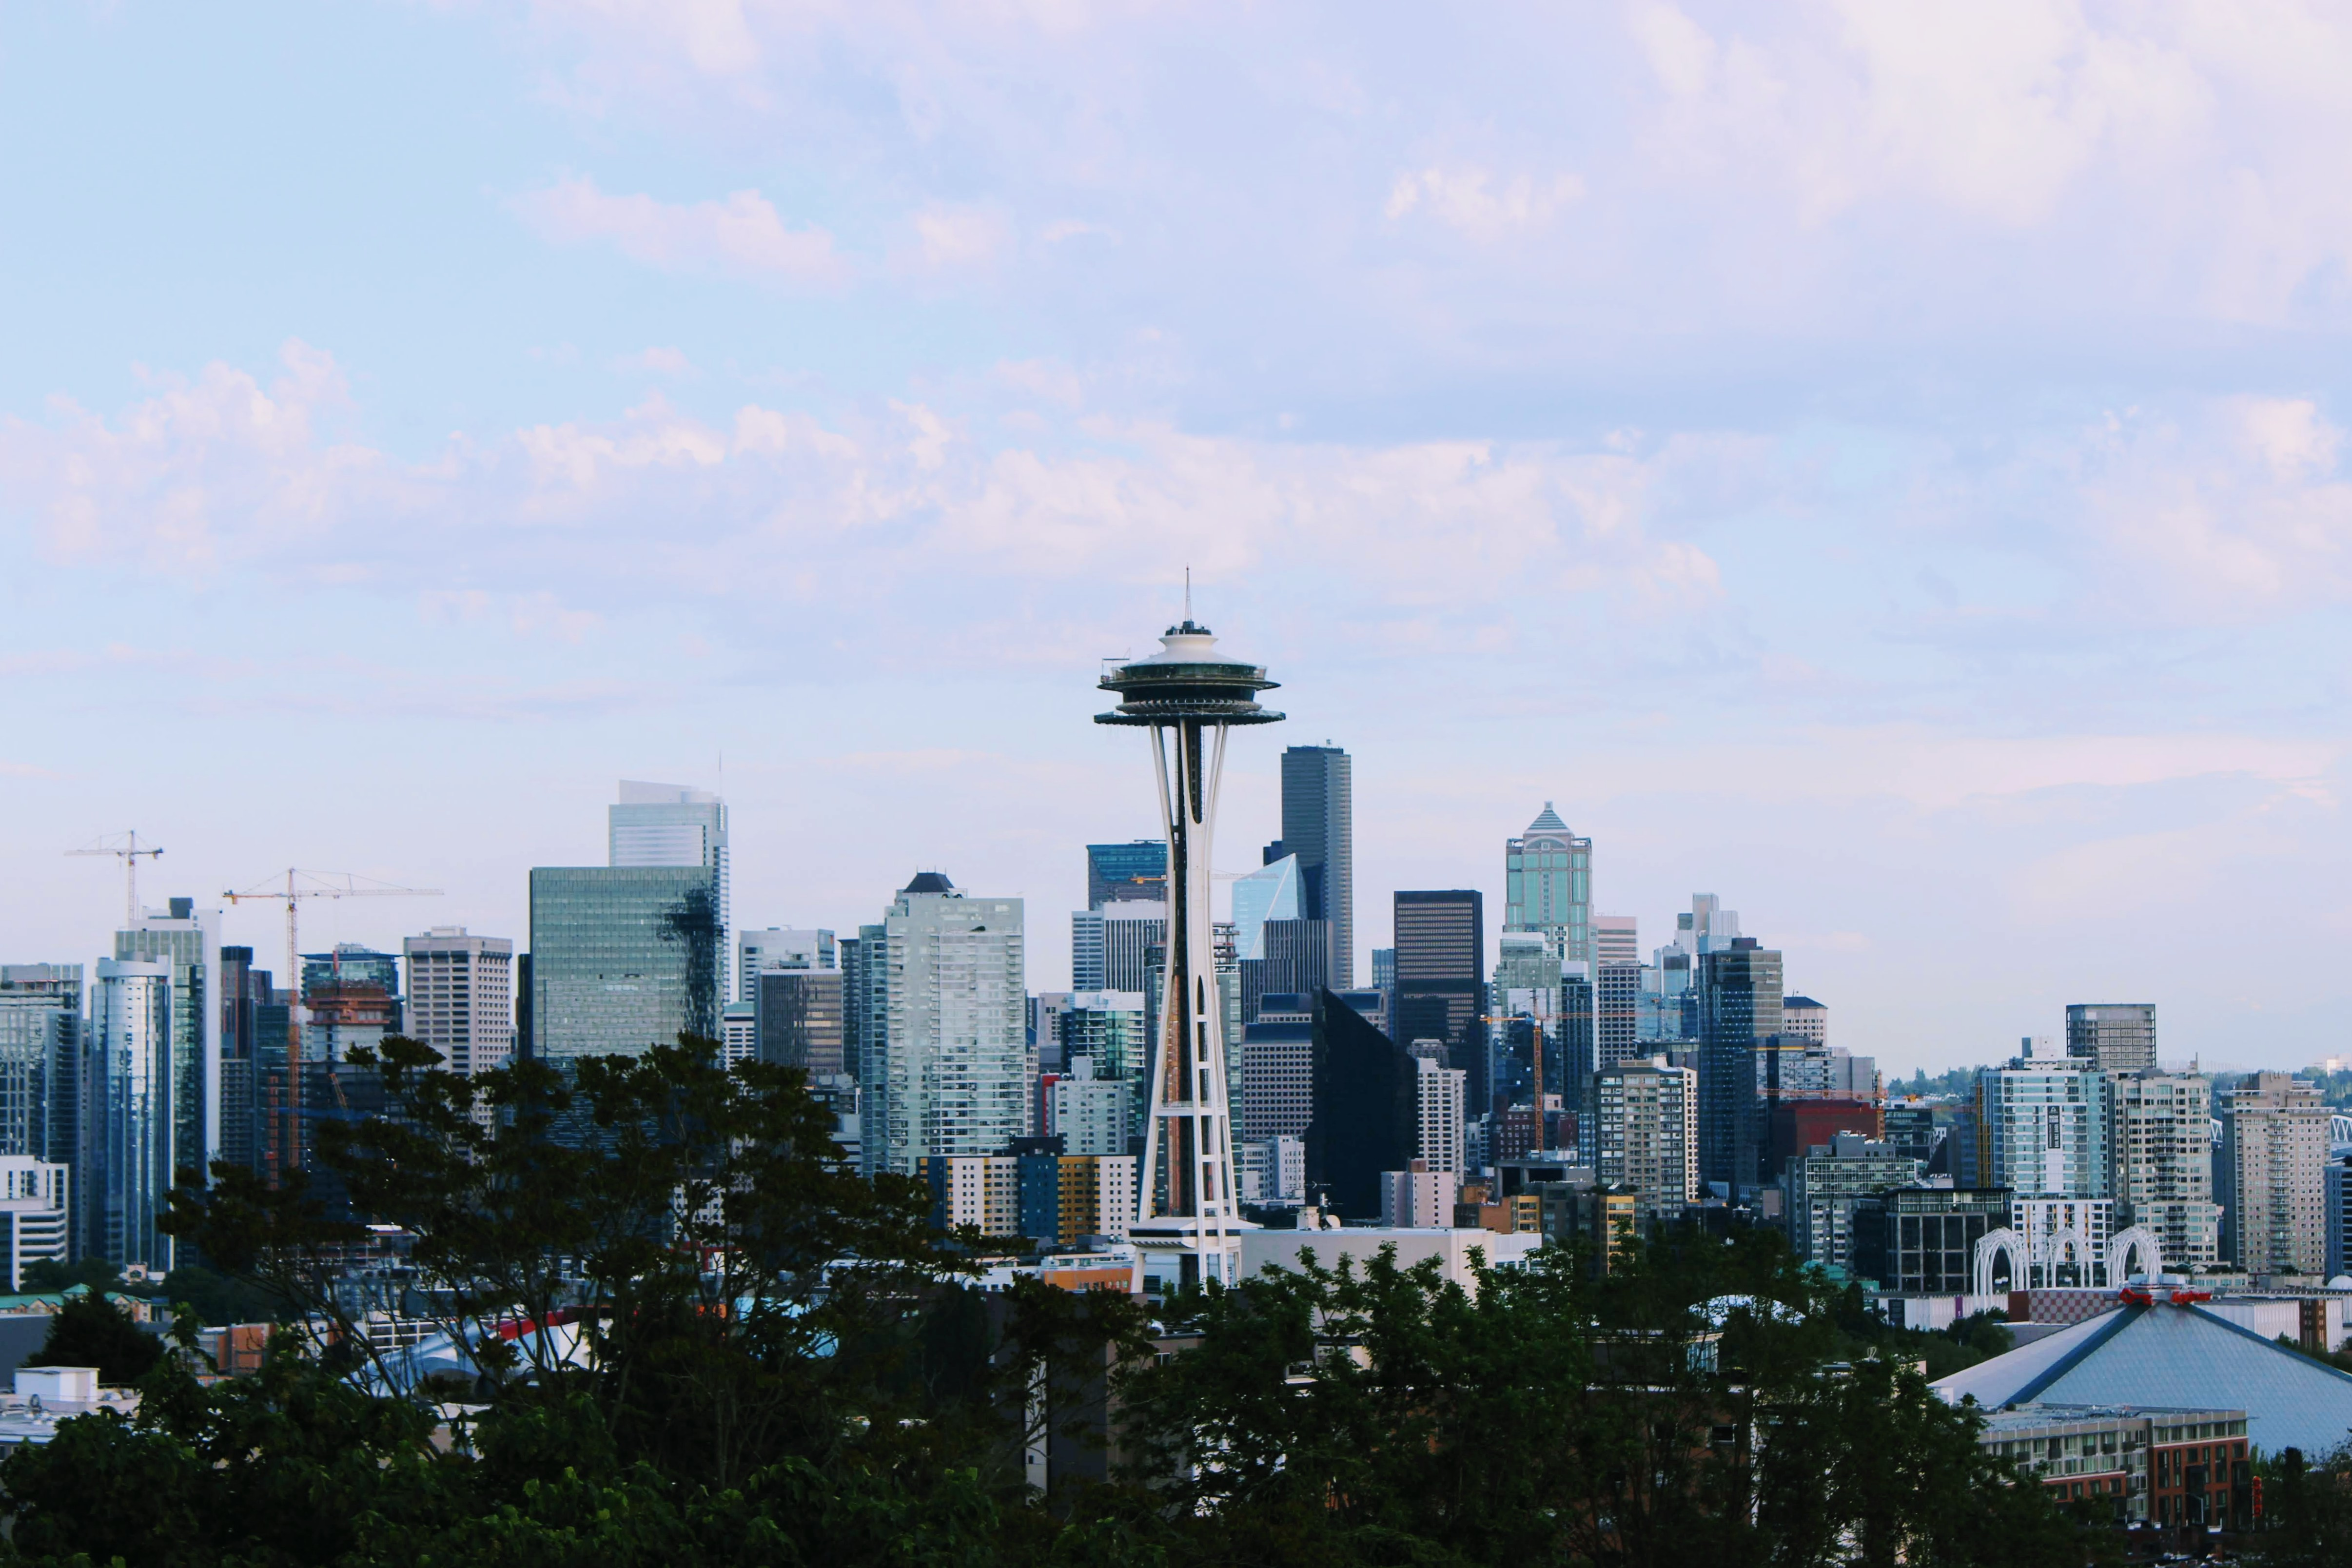 5-Day Portland and Seattle Road Trip Itinerary